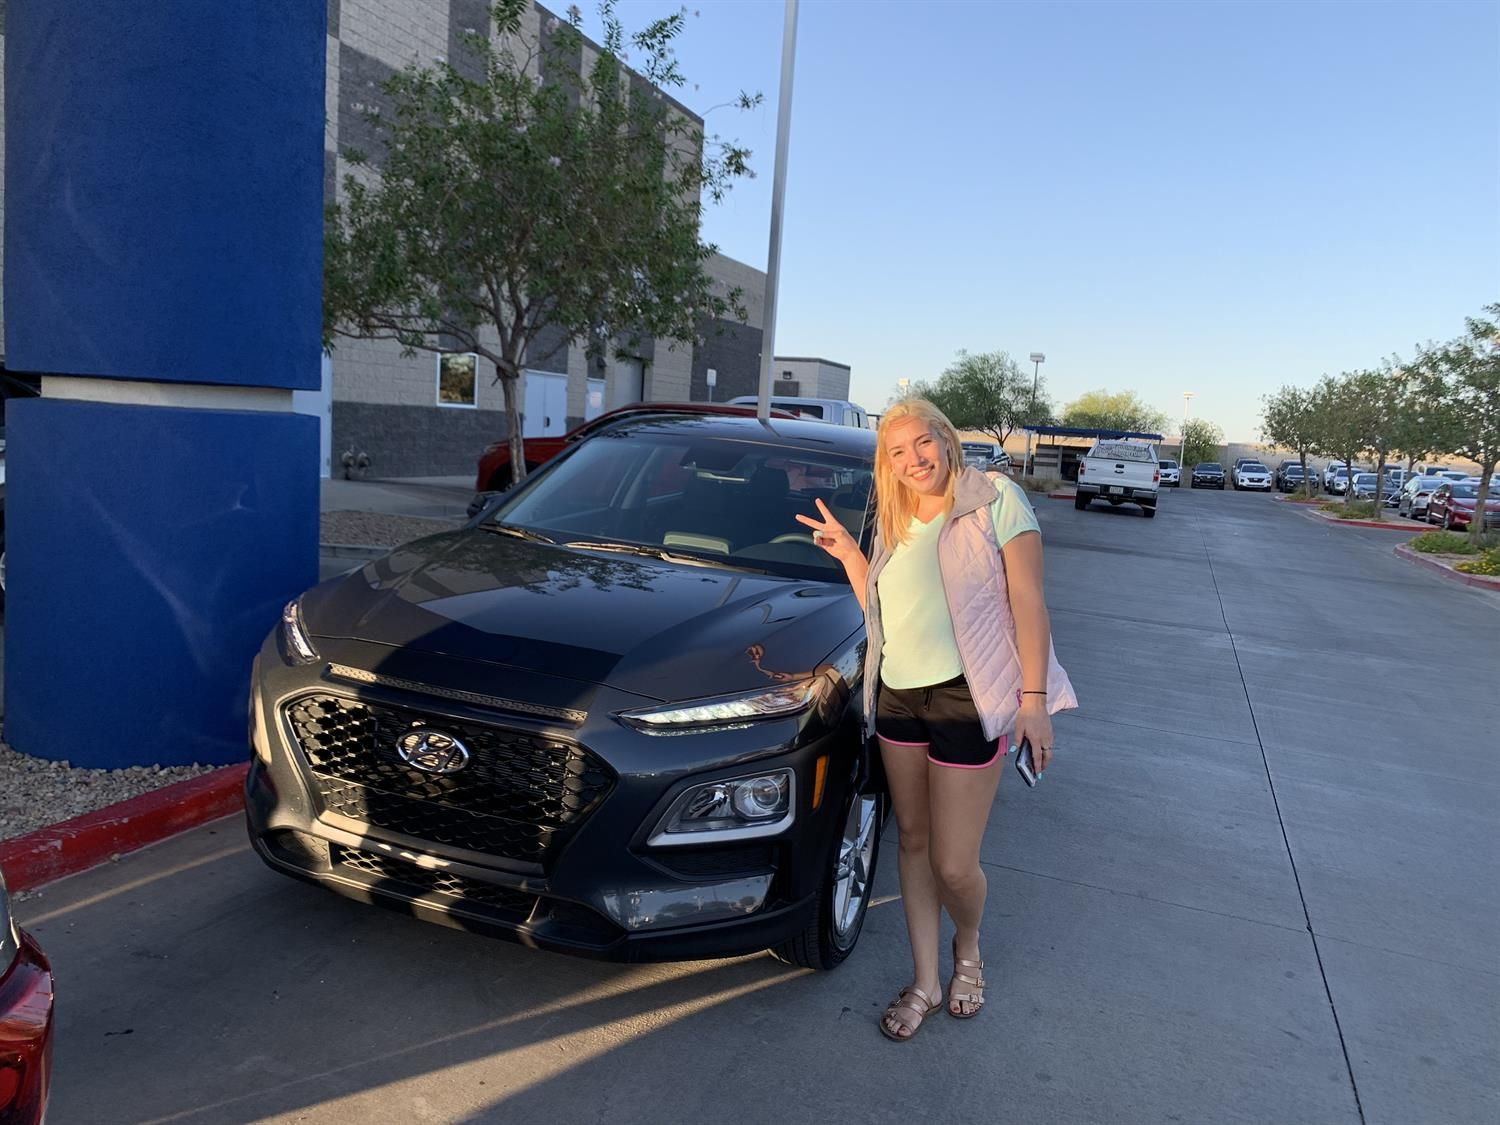 Christilyn S New 2020 Hyundai Kona Congratulations And Best Wishes From Henderson Hyundai Super Hyundai Dealership New Hyundai Congratulations And Best Wishes